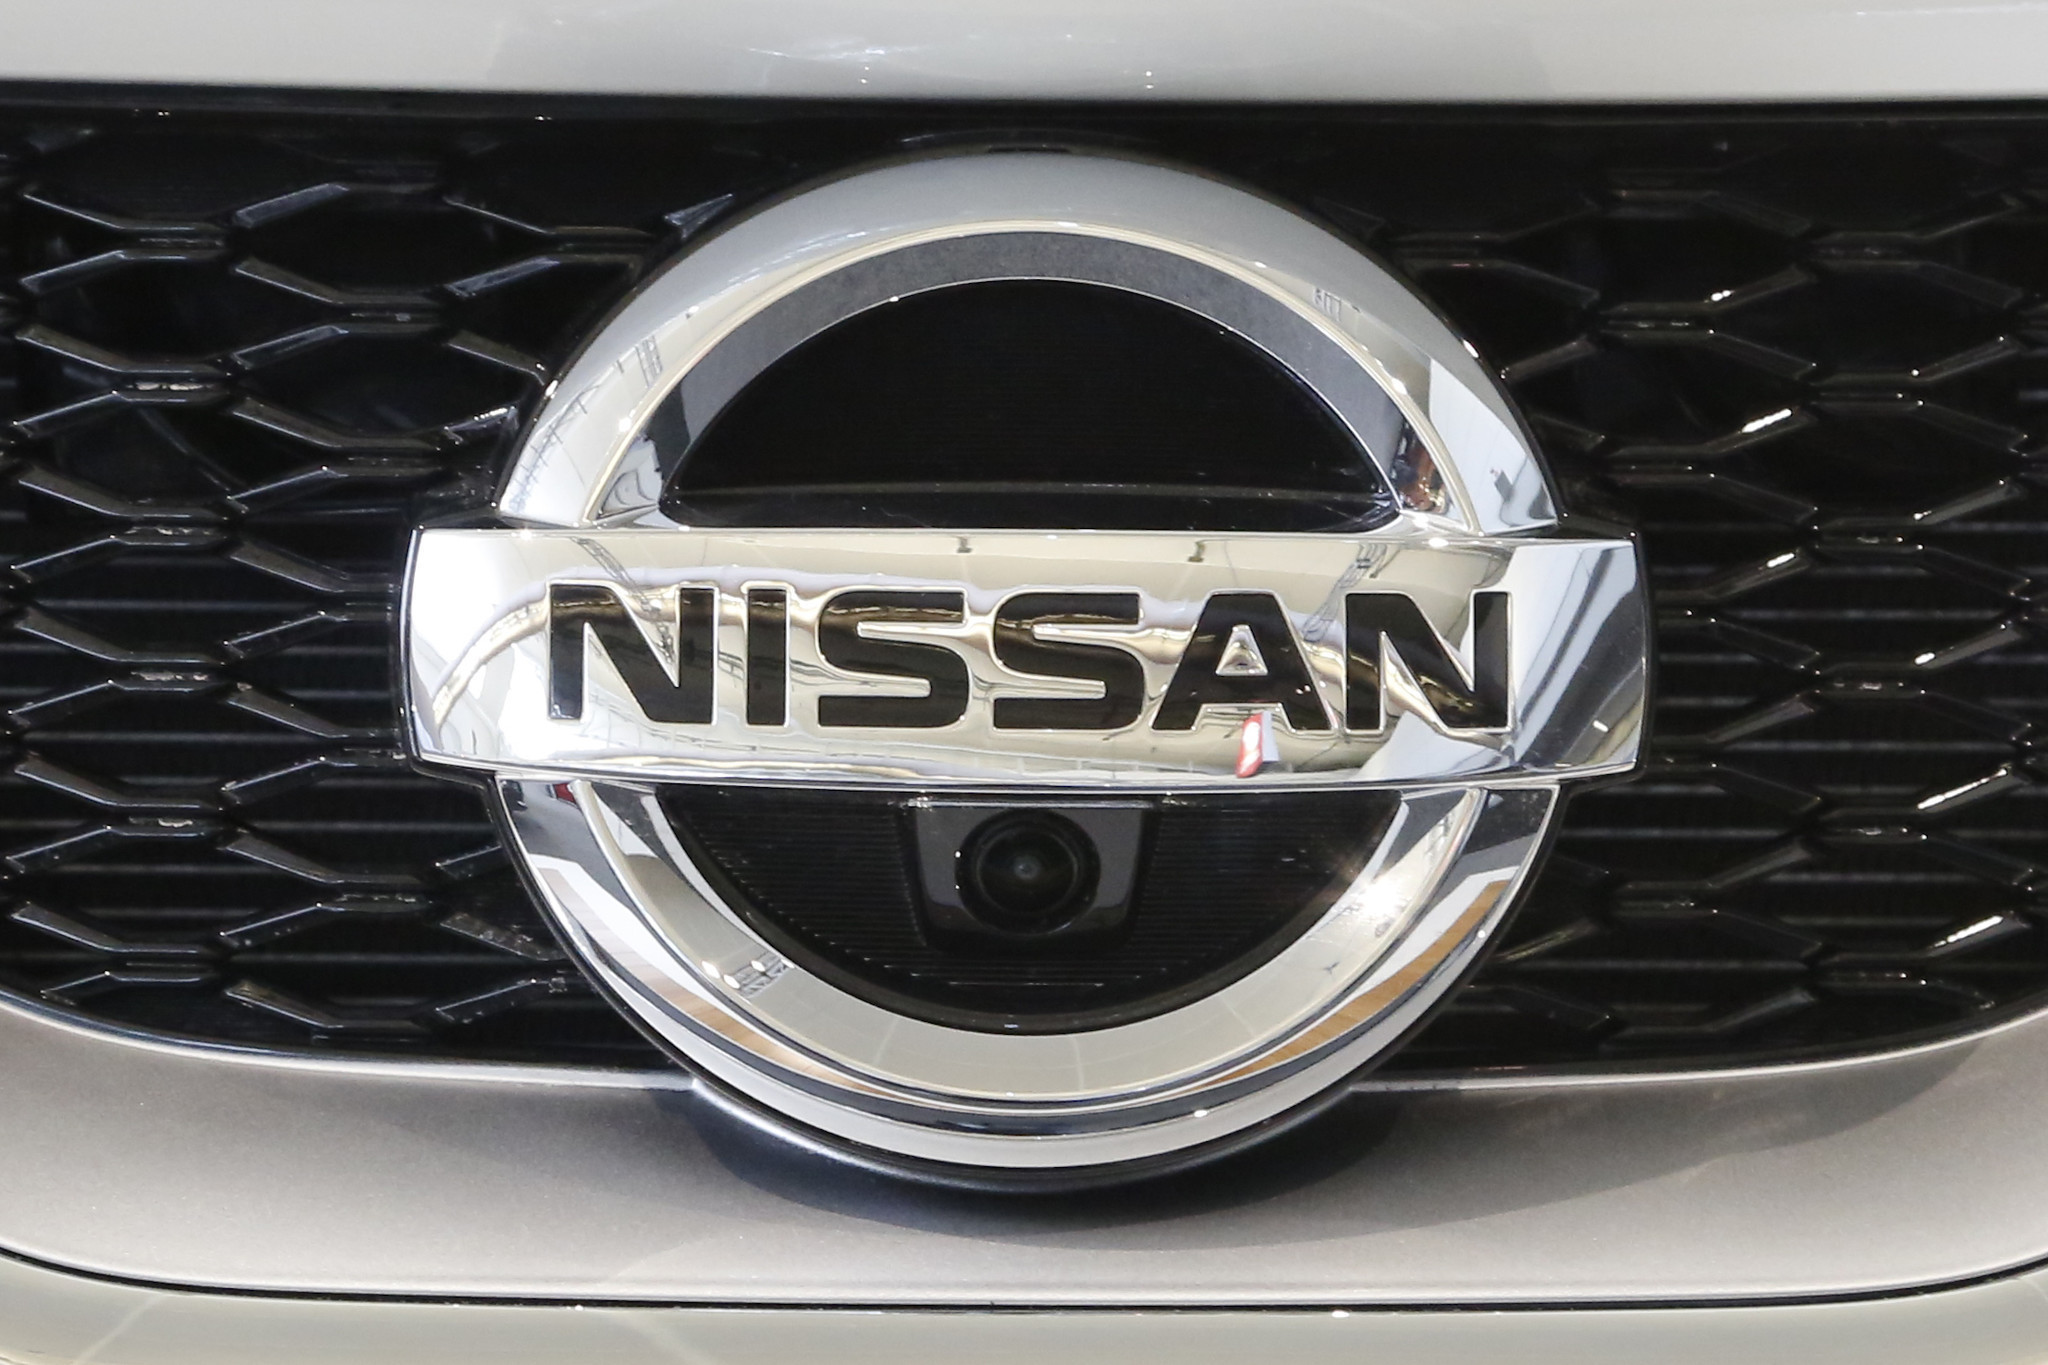 Nissan recalls more than 120 000 vehicles after fluid leaks cause